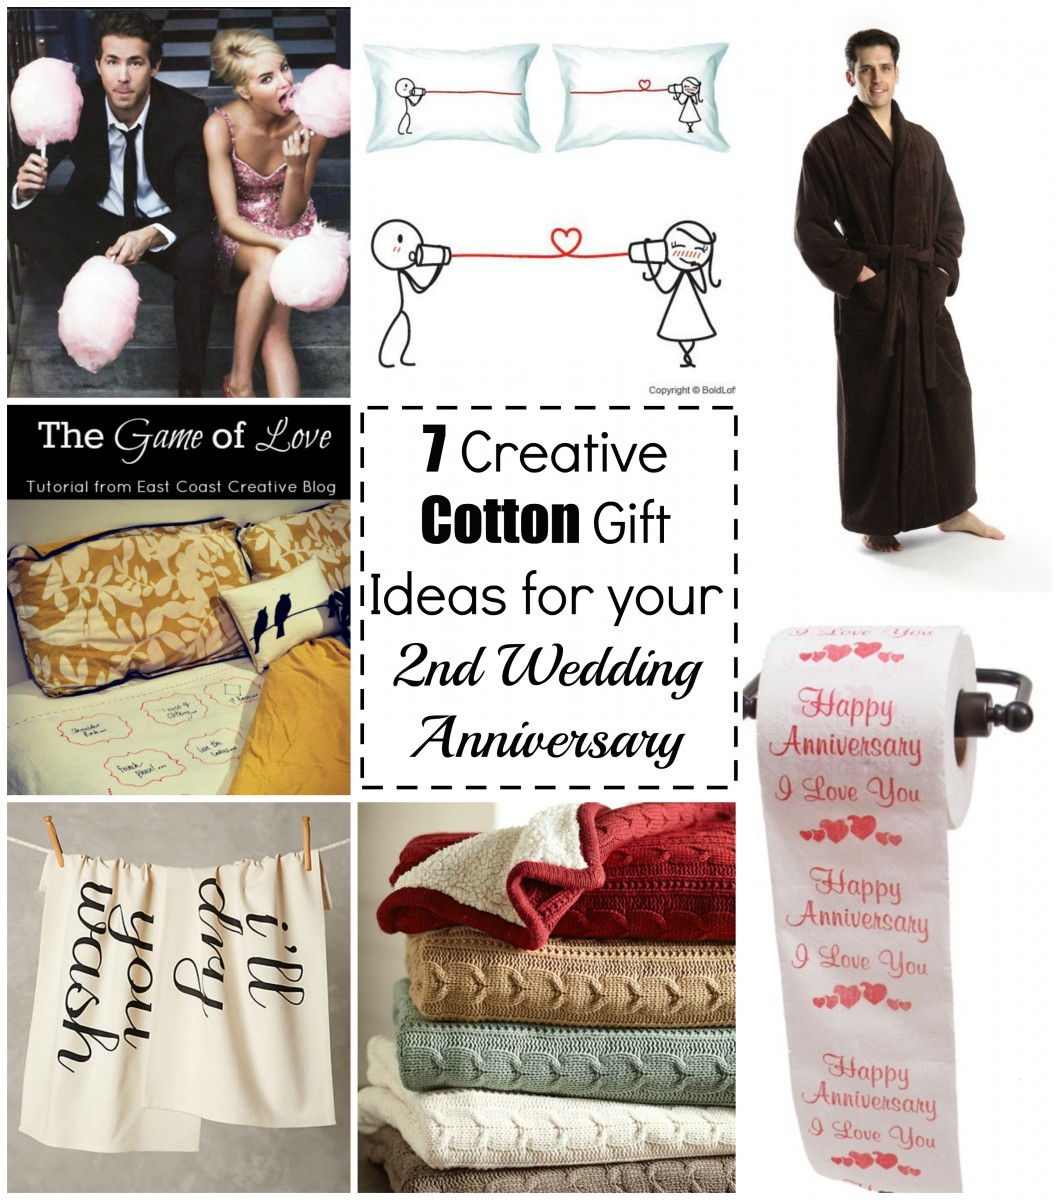 Ideas For 2 Year Wedding Anniversary Gift : creative cotton gift ideas for your 2nd wedding anniversary her ...